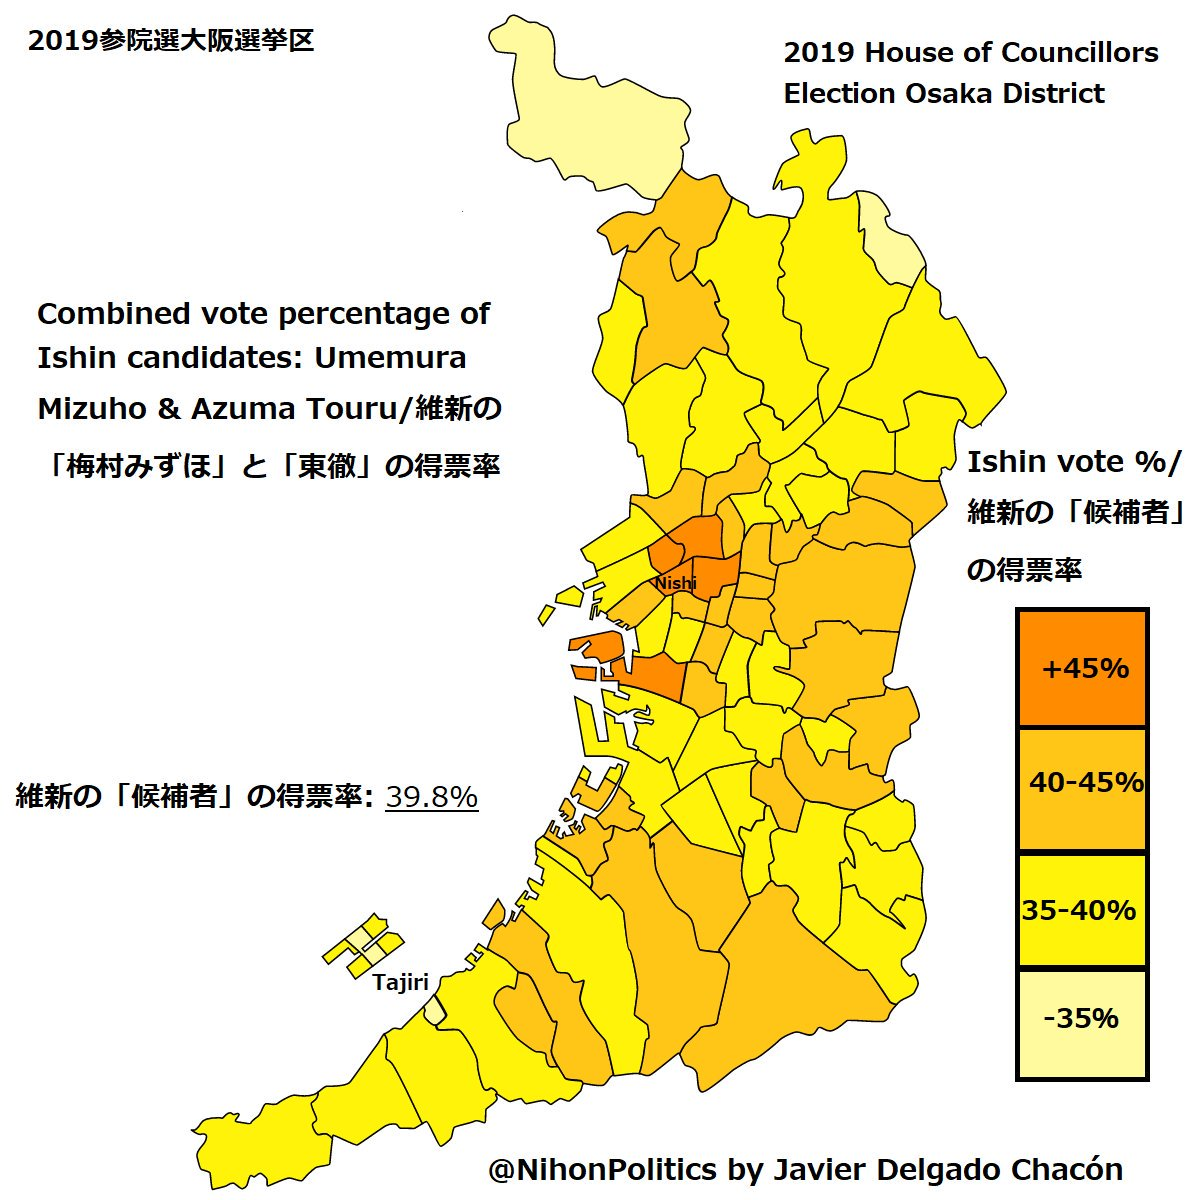 After 2016, 2019 was the second time Ishin was able to push two candidates over the line. They're especially strong in the eastern part of the Osaka basin &  in the downtown wards of Osaka city: Kita, Fukushima, Nishi & Chuo-Ku. 維新候補者の結果である #Osakaelectionmap #維新の会